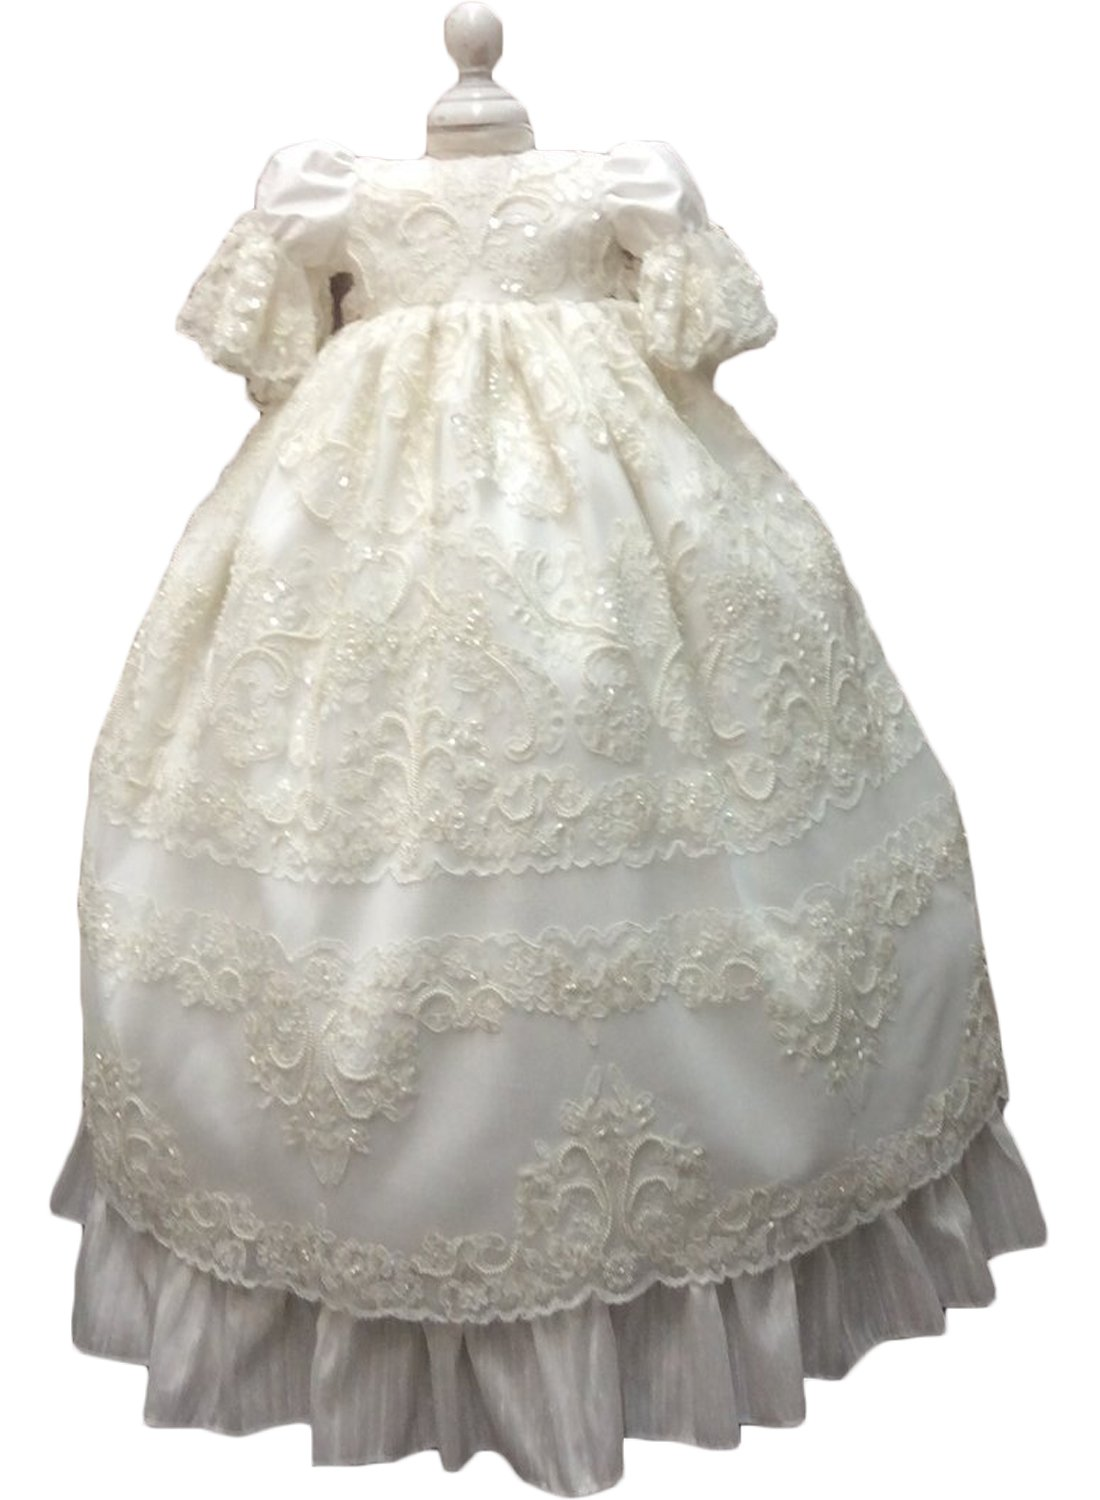 Newdeve Baby Girls Special Occasion Dress For Christening Baptism Wedding Birthday (6-9 Months, Ivory)